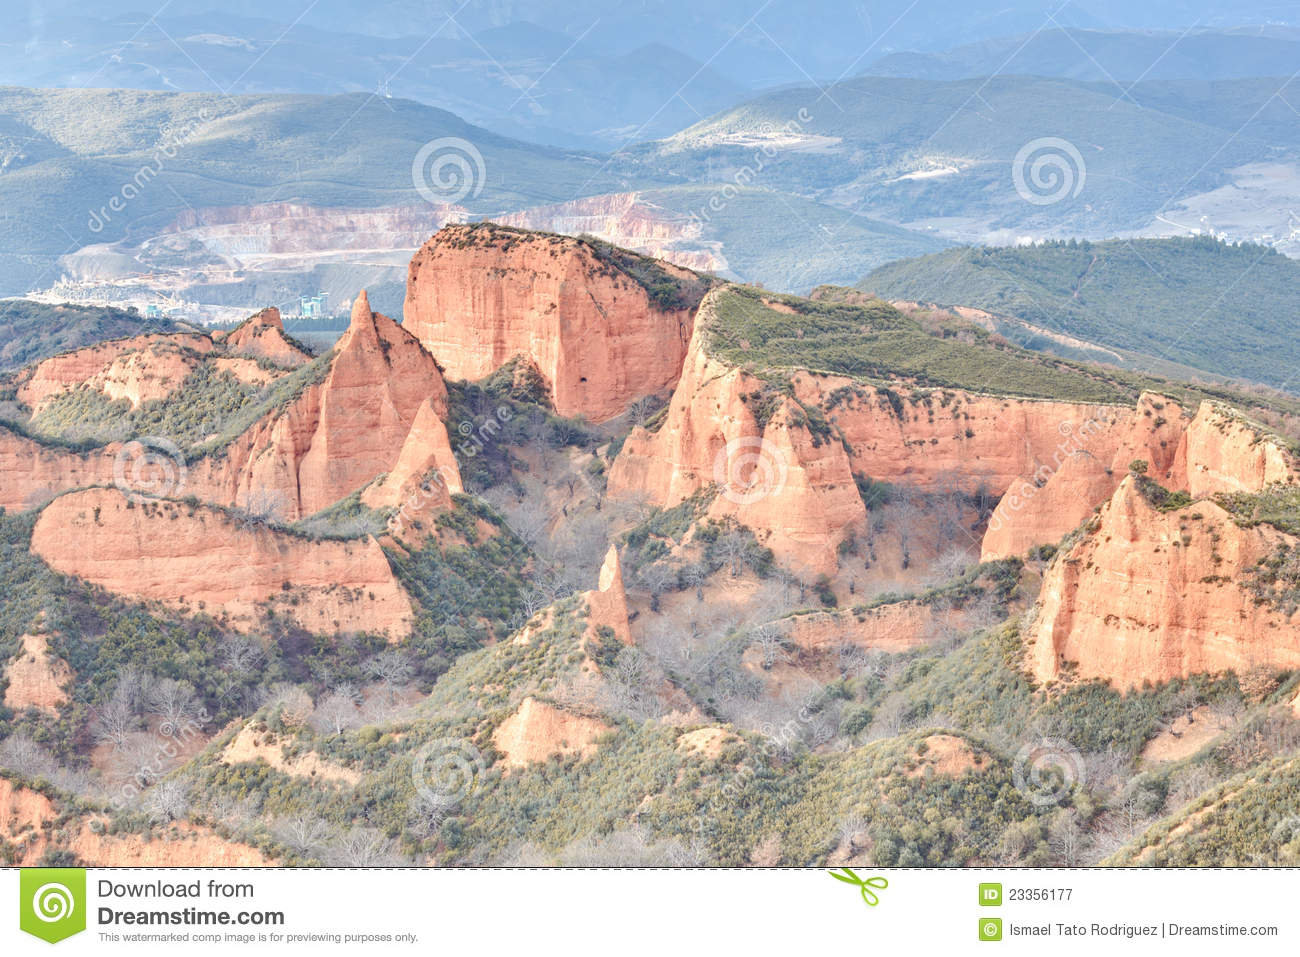 Las Medulas, Spain Royalty Free Stock Photography - Image: 23356177